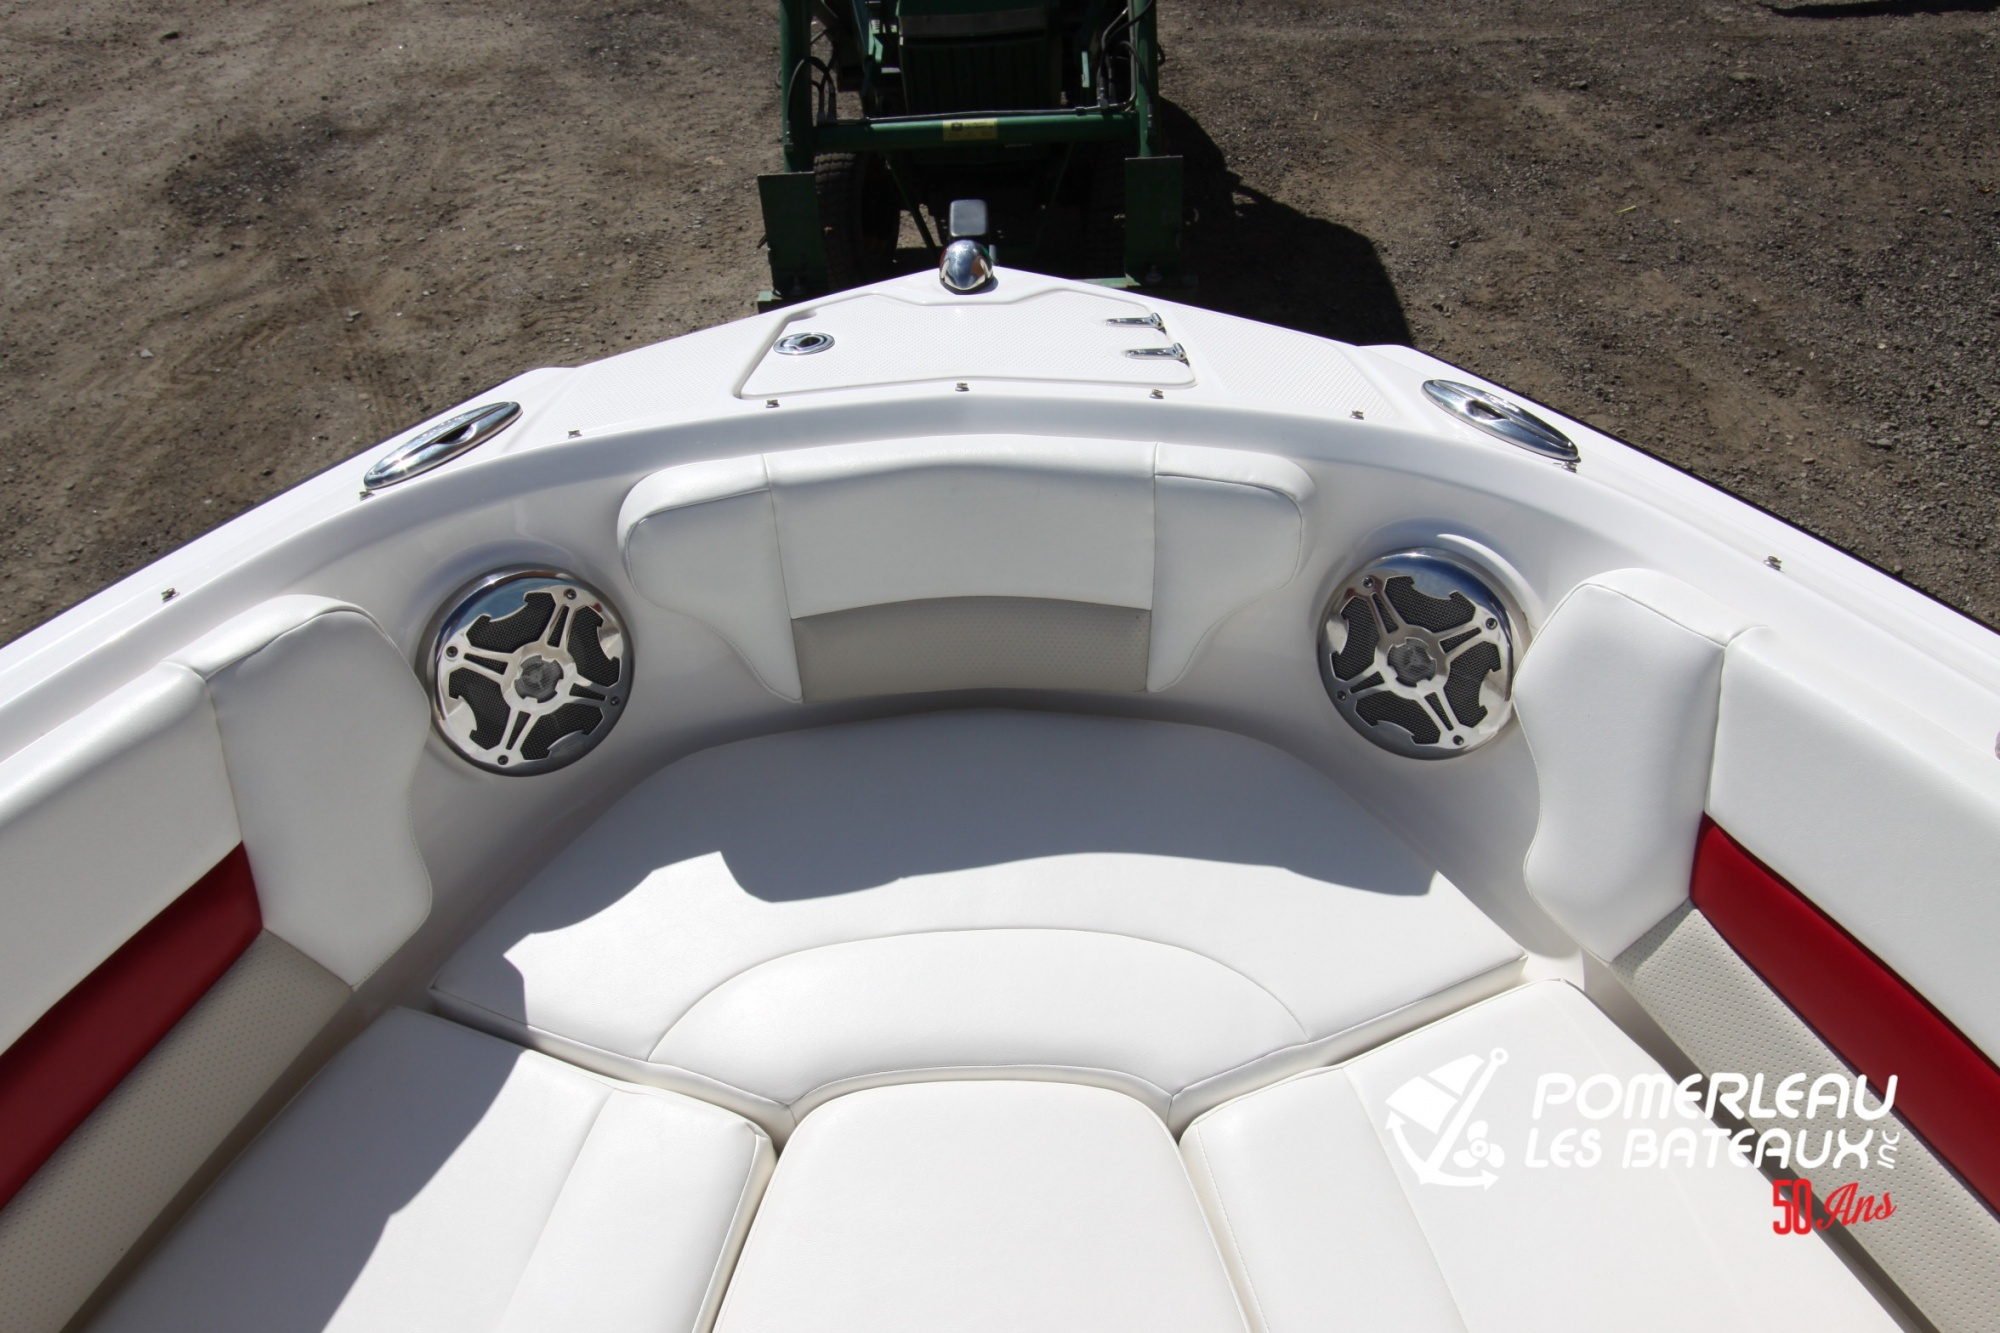 Chaparral 204 Xtreme - IMG_0623